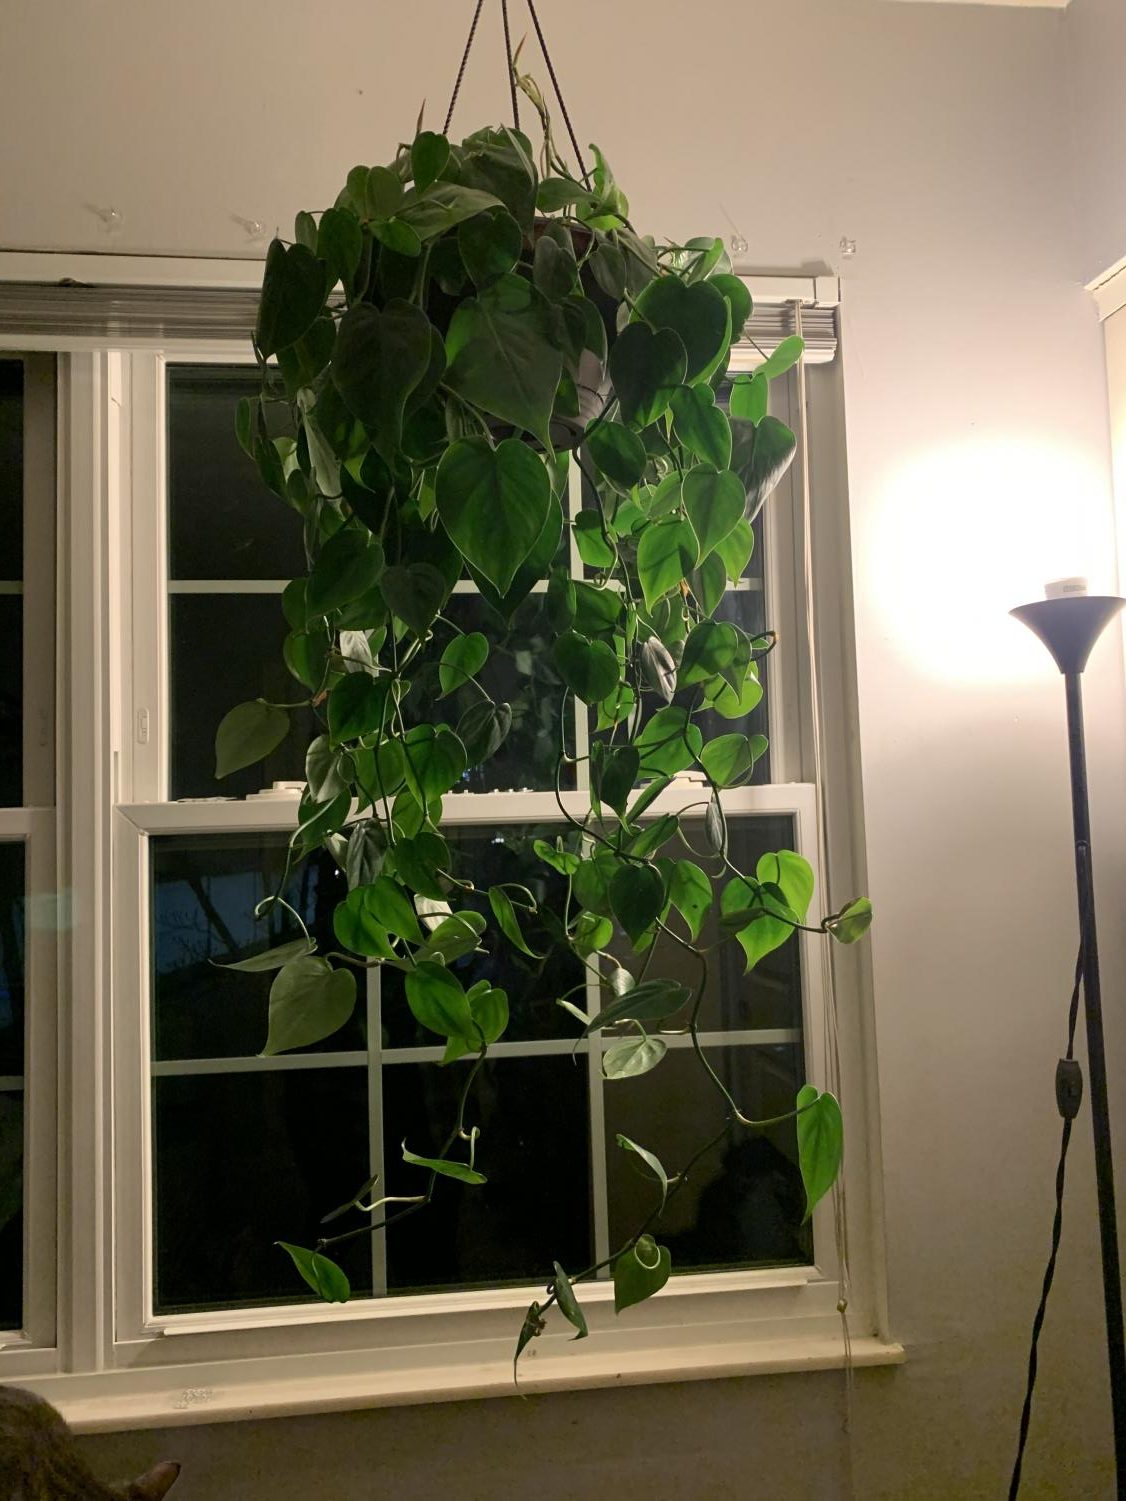 PHILODENDRON. A simple house plant with serious repercussions. Philodendrons are hanging plants, they have a similar growth pattern to ivy, meaning they grow extremely long and have a tendency to travel. On the bright side, the cuttings of this plant can be used to grow new plants.